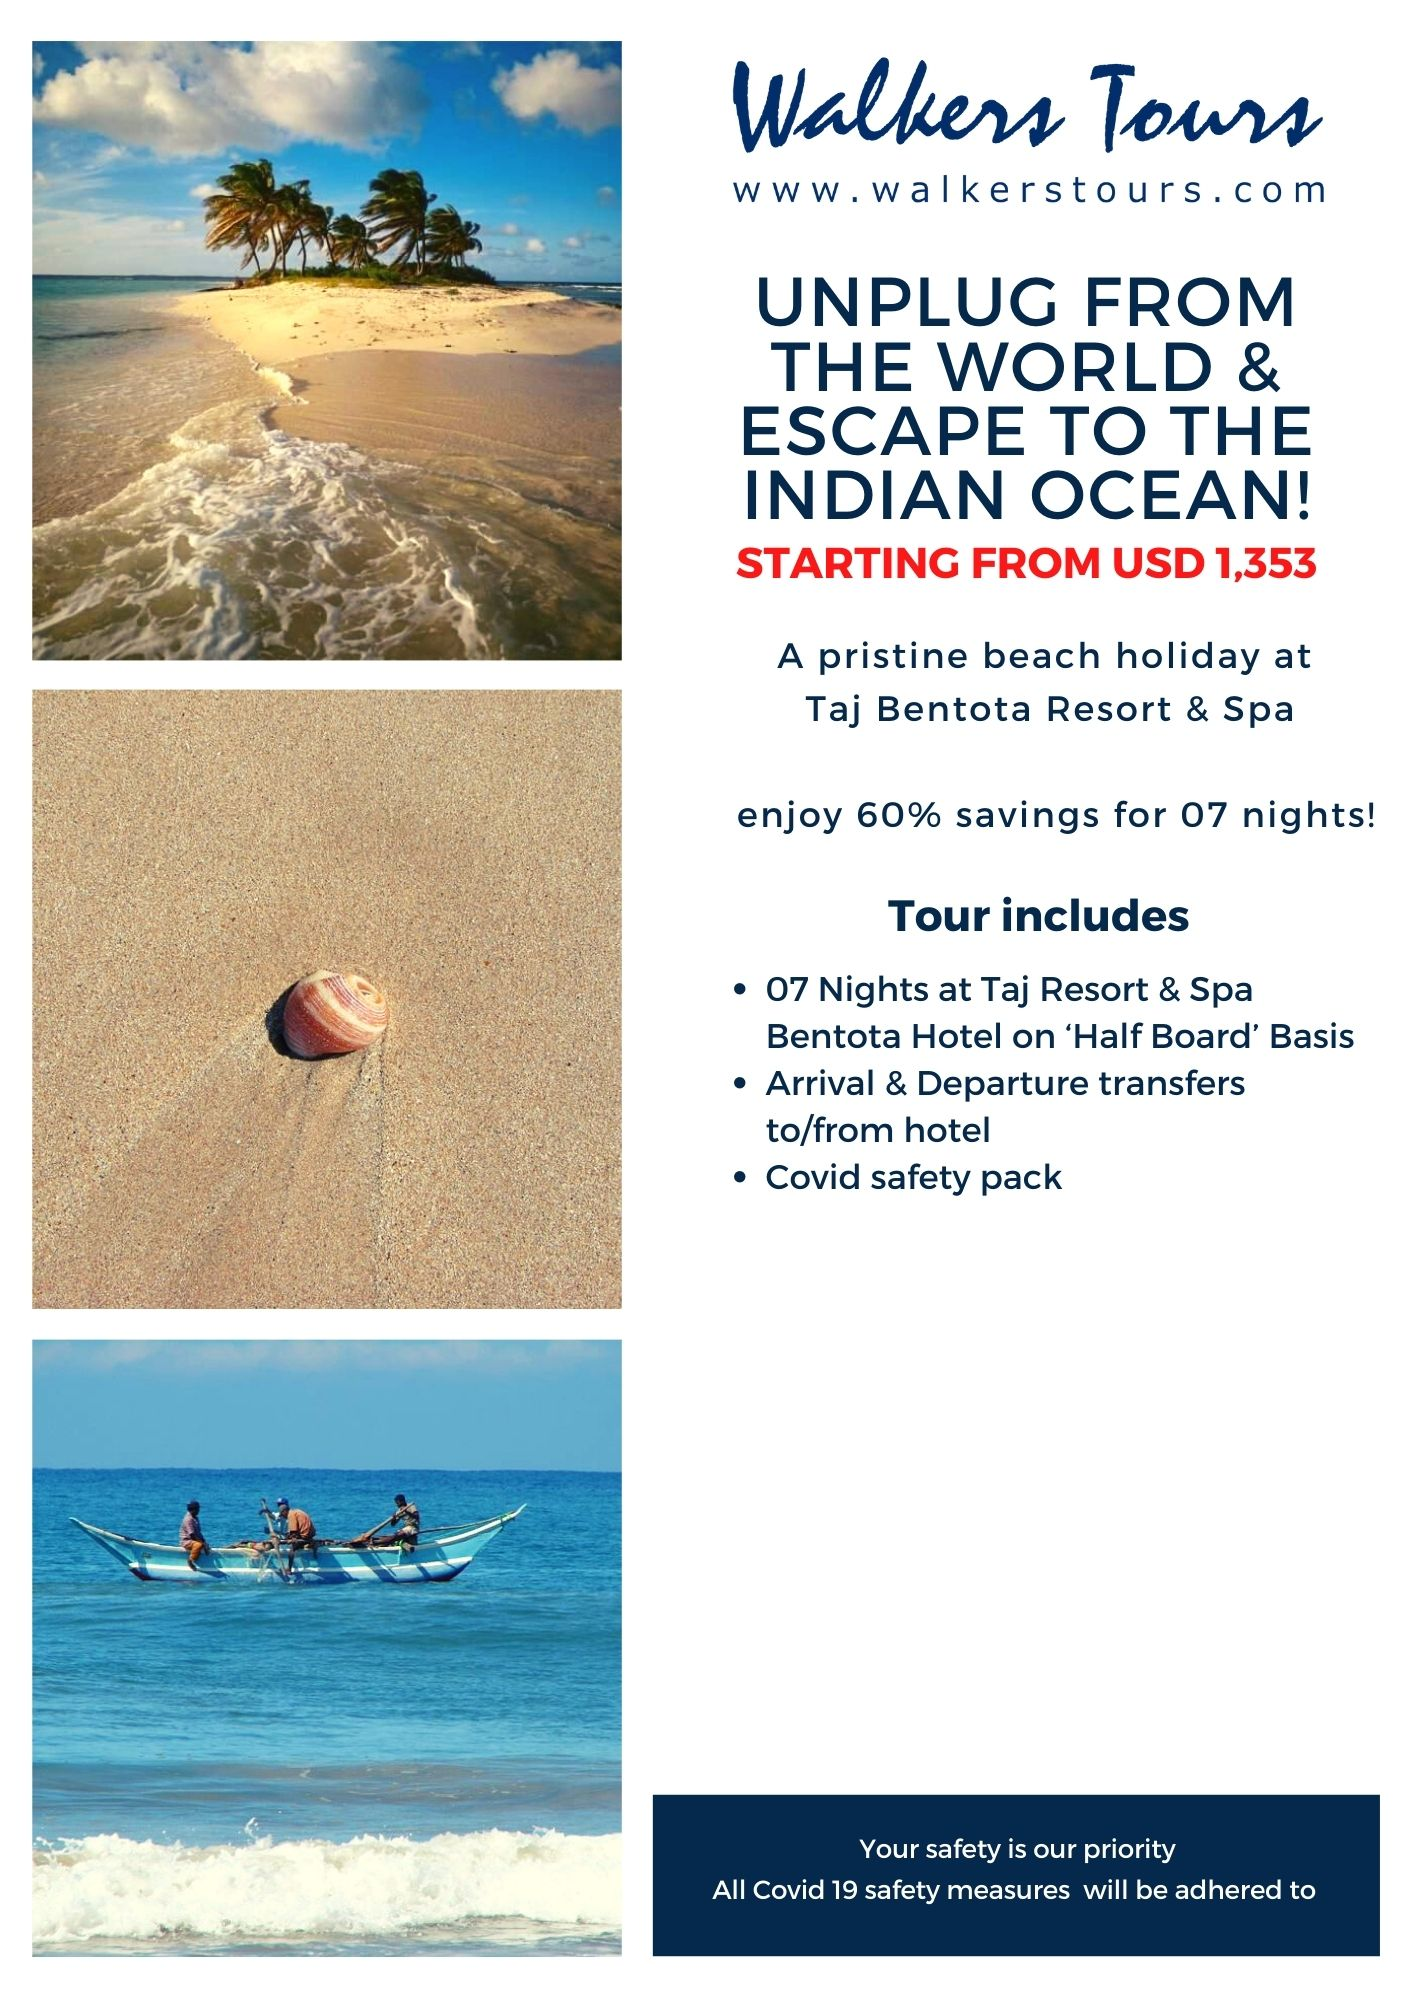 unplug from the world & Escape to the indian ocean